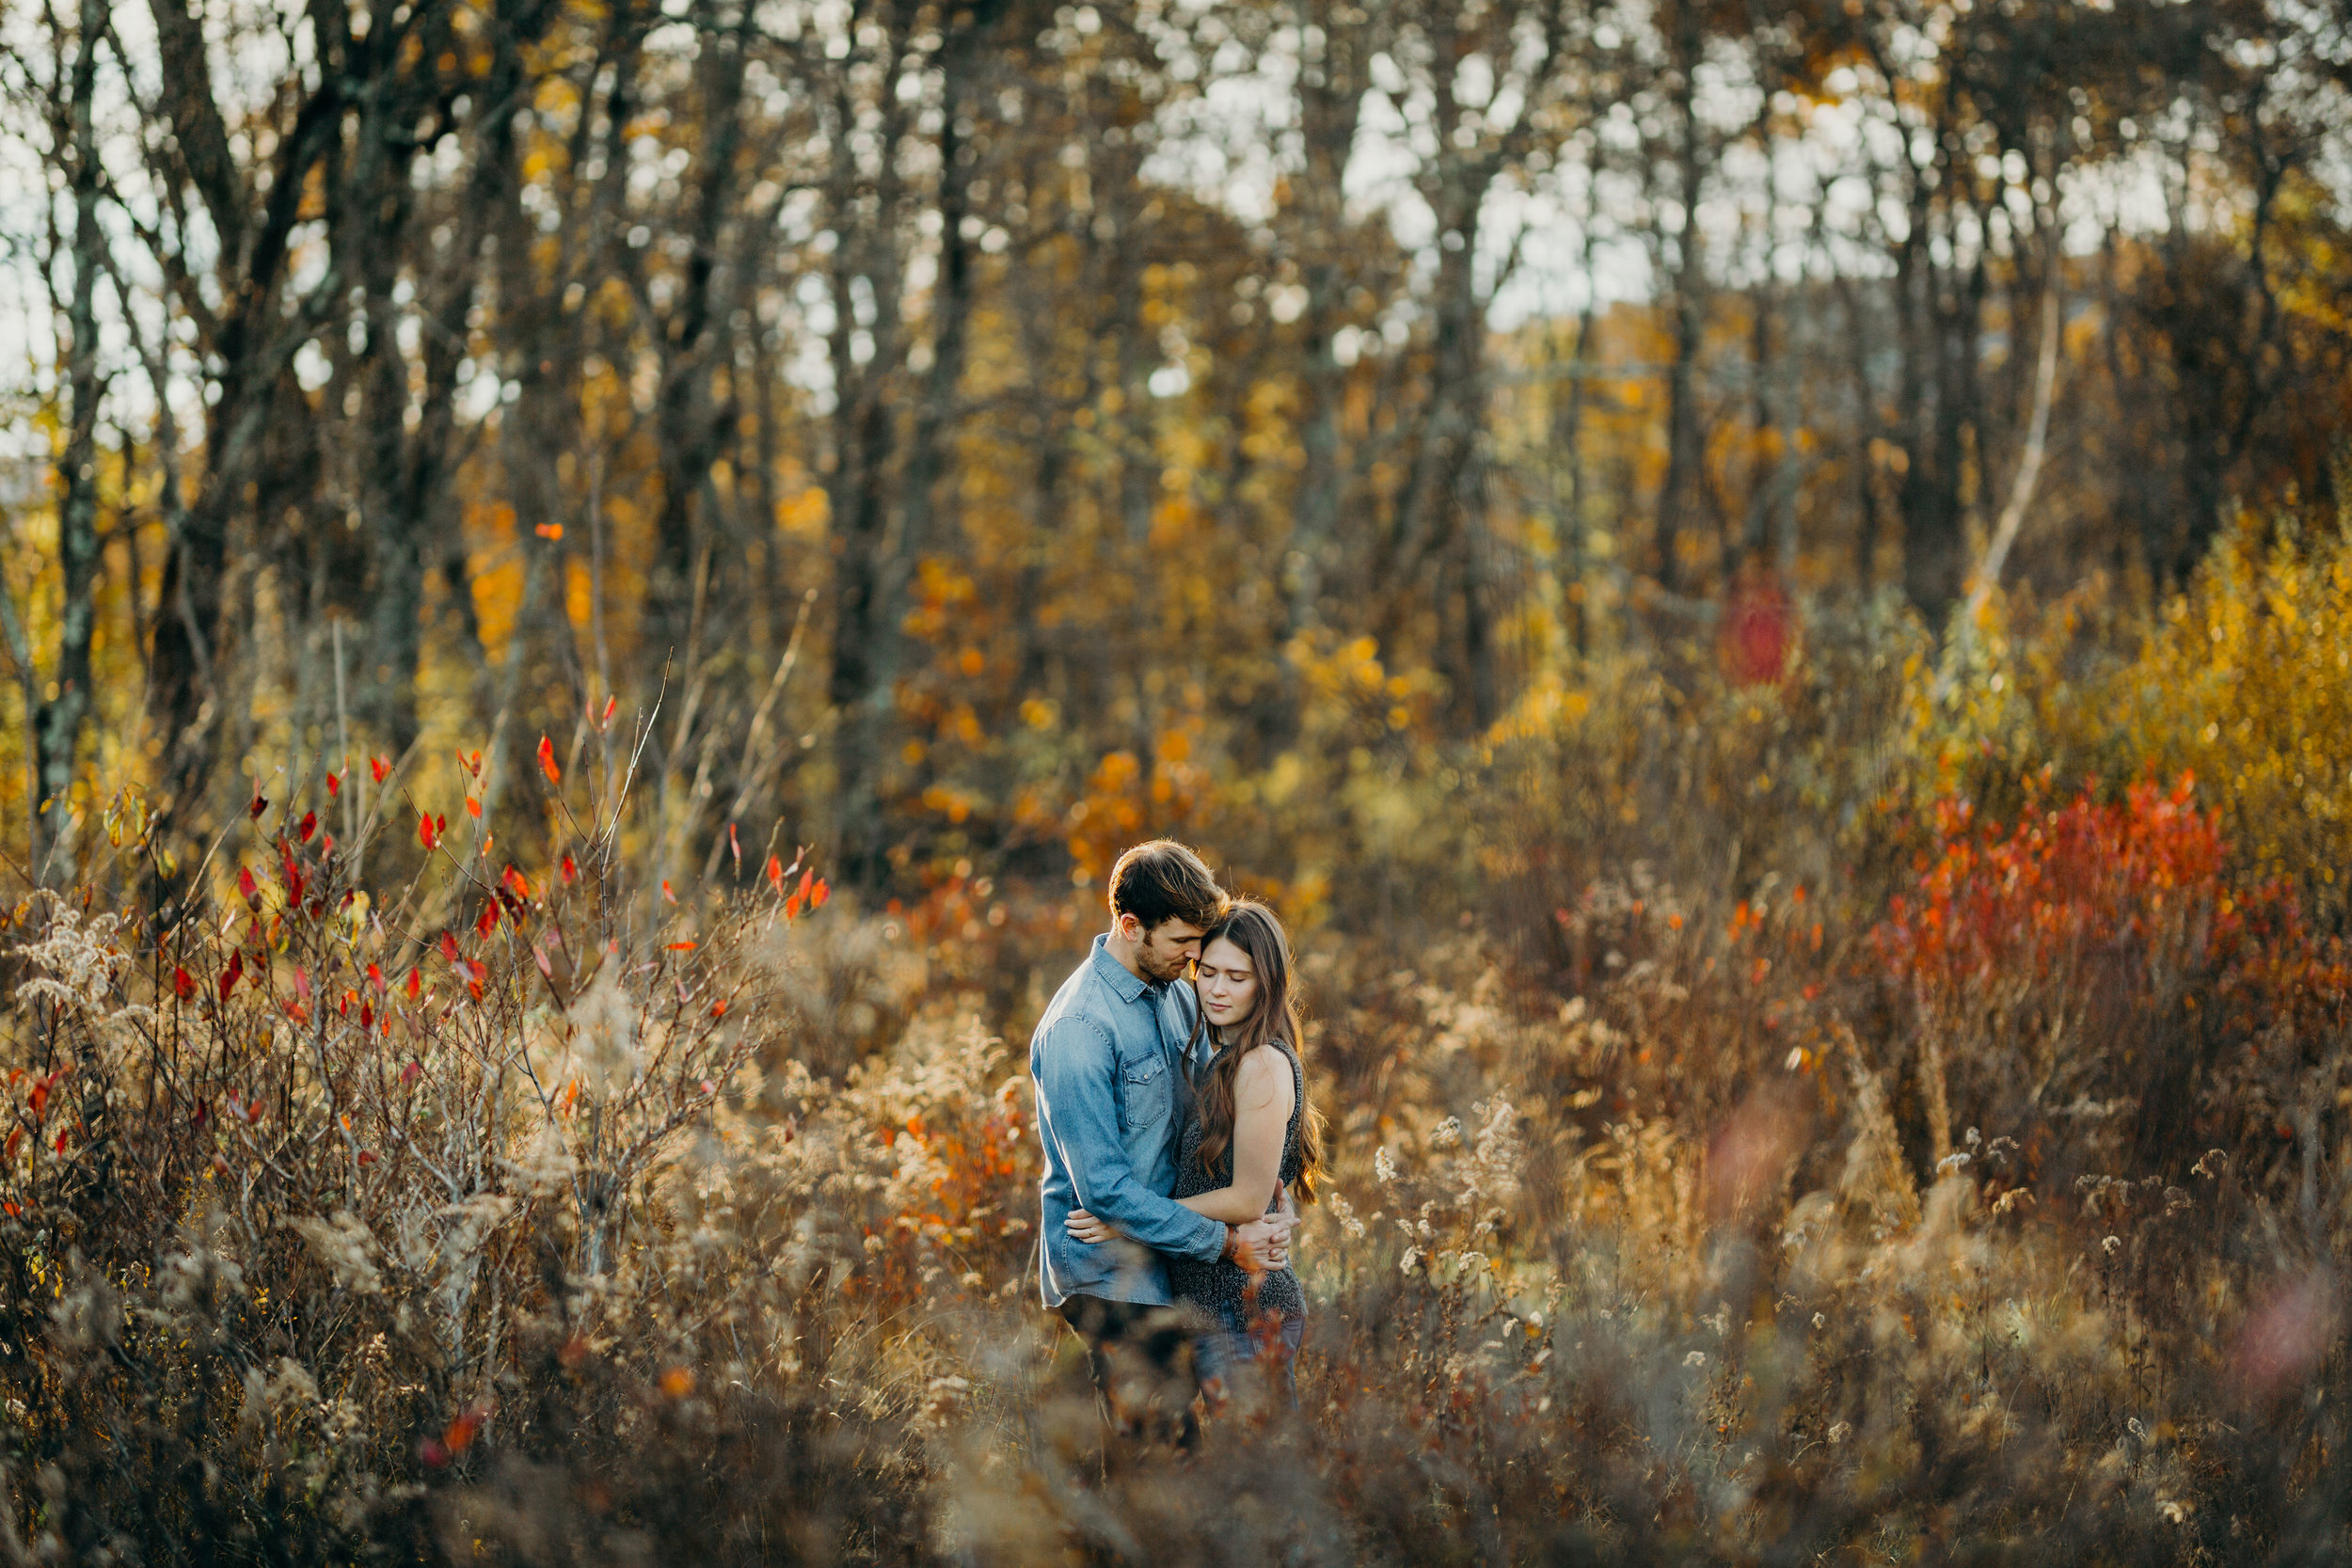 rustic-autumn-fall-north-northern-new-jersey-couple-portrait-elopement-photographer-48.jpg